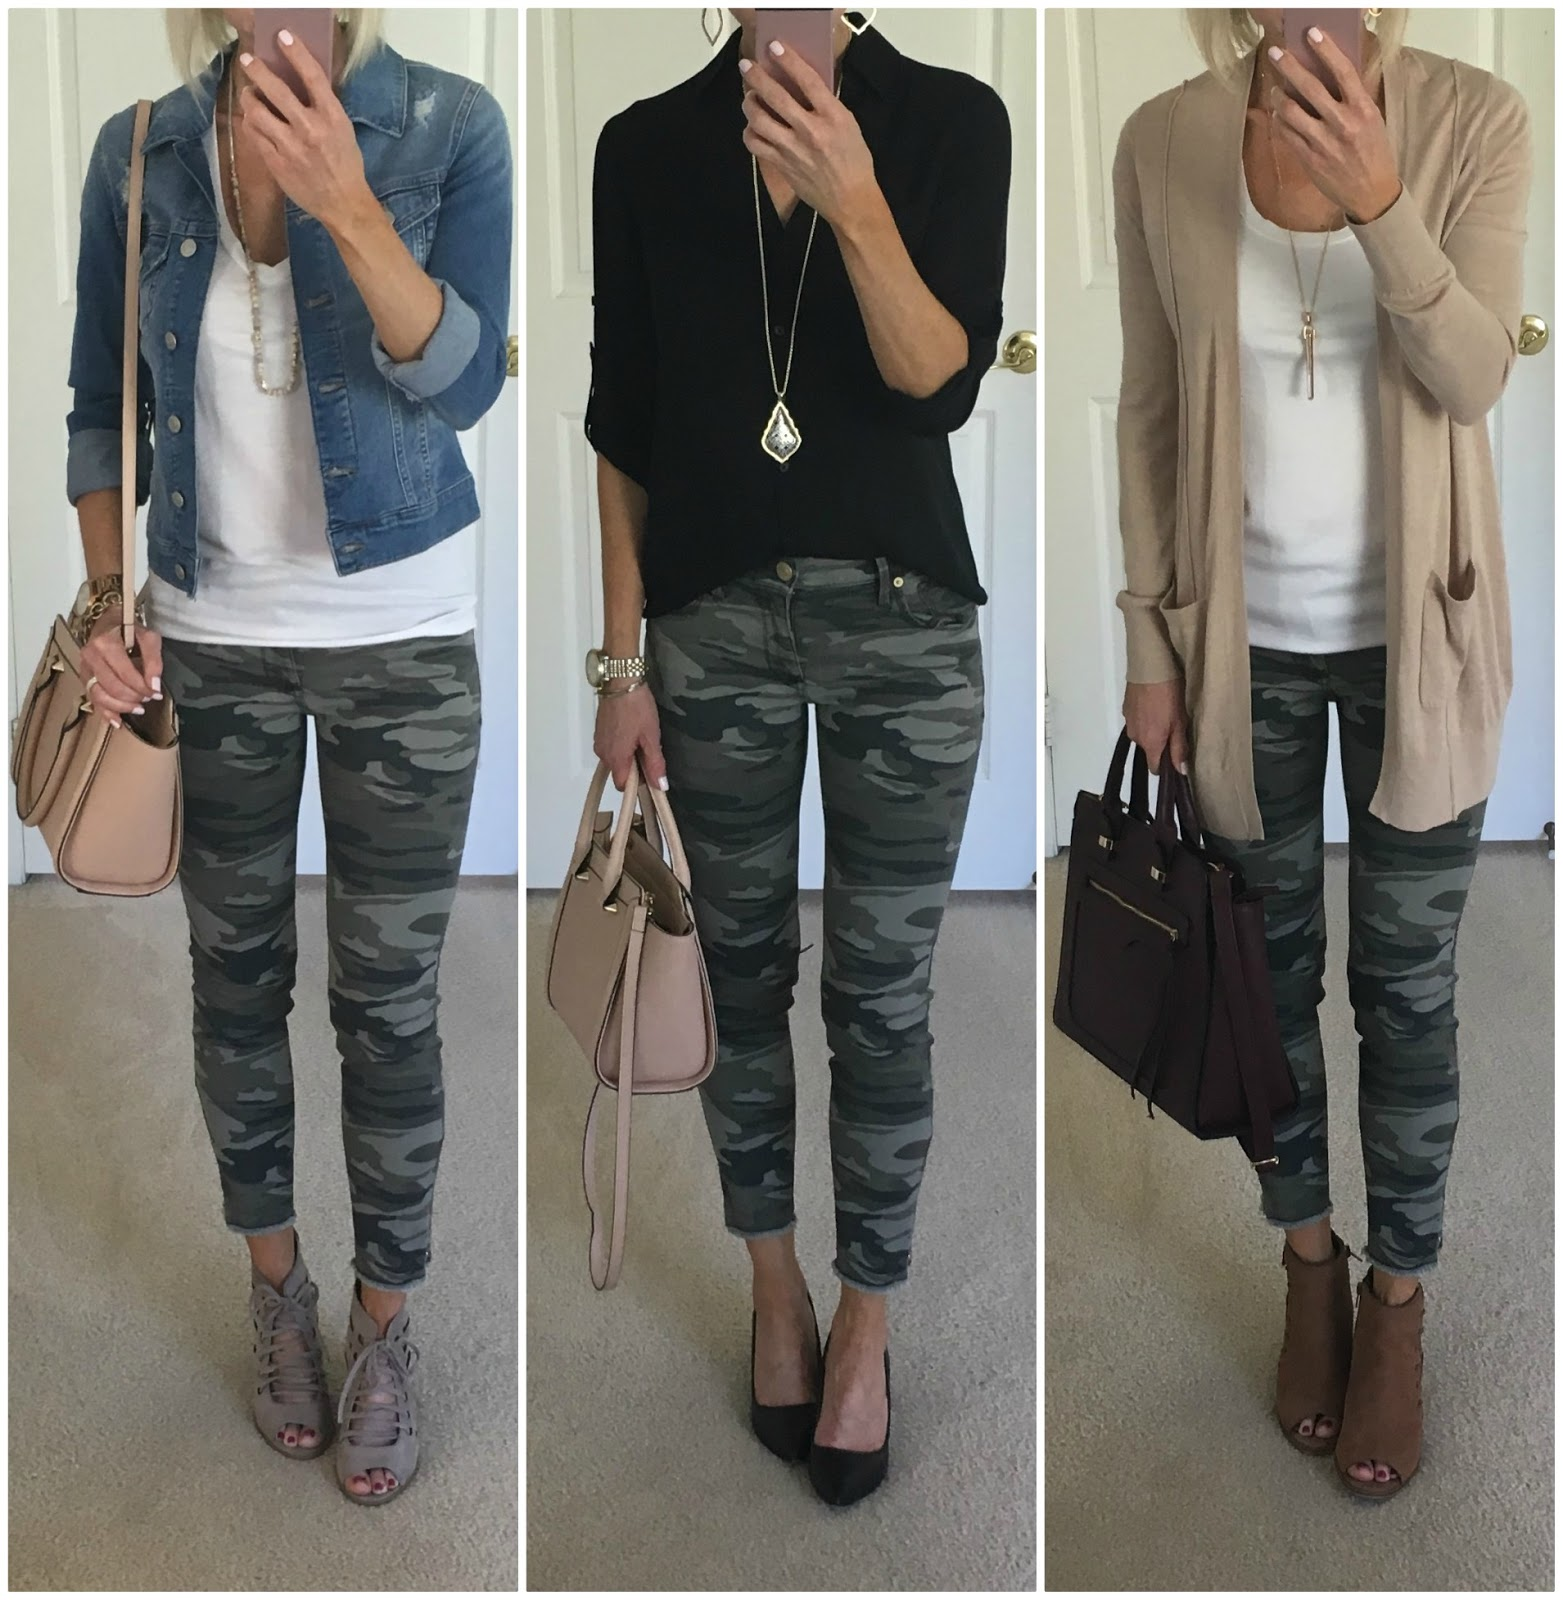 camo jeans outfit ideas on the daily express